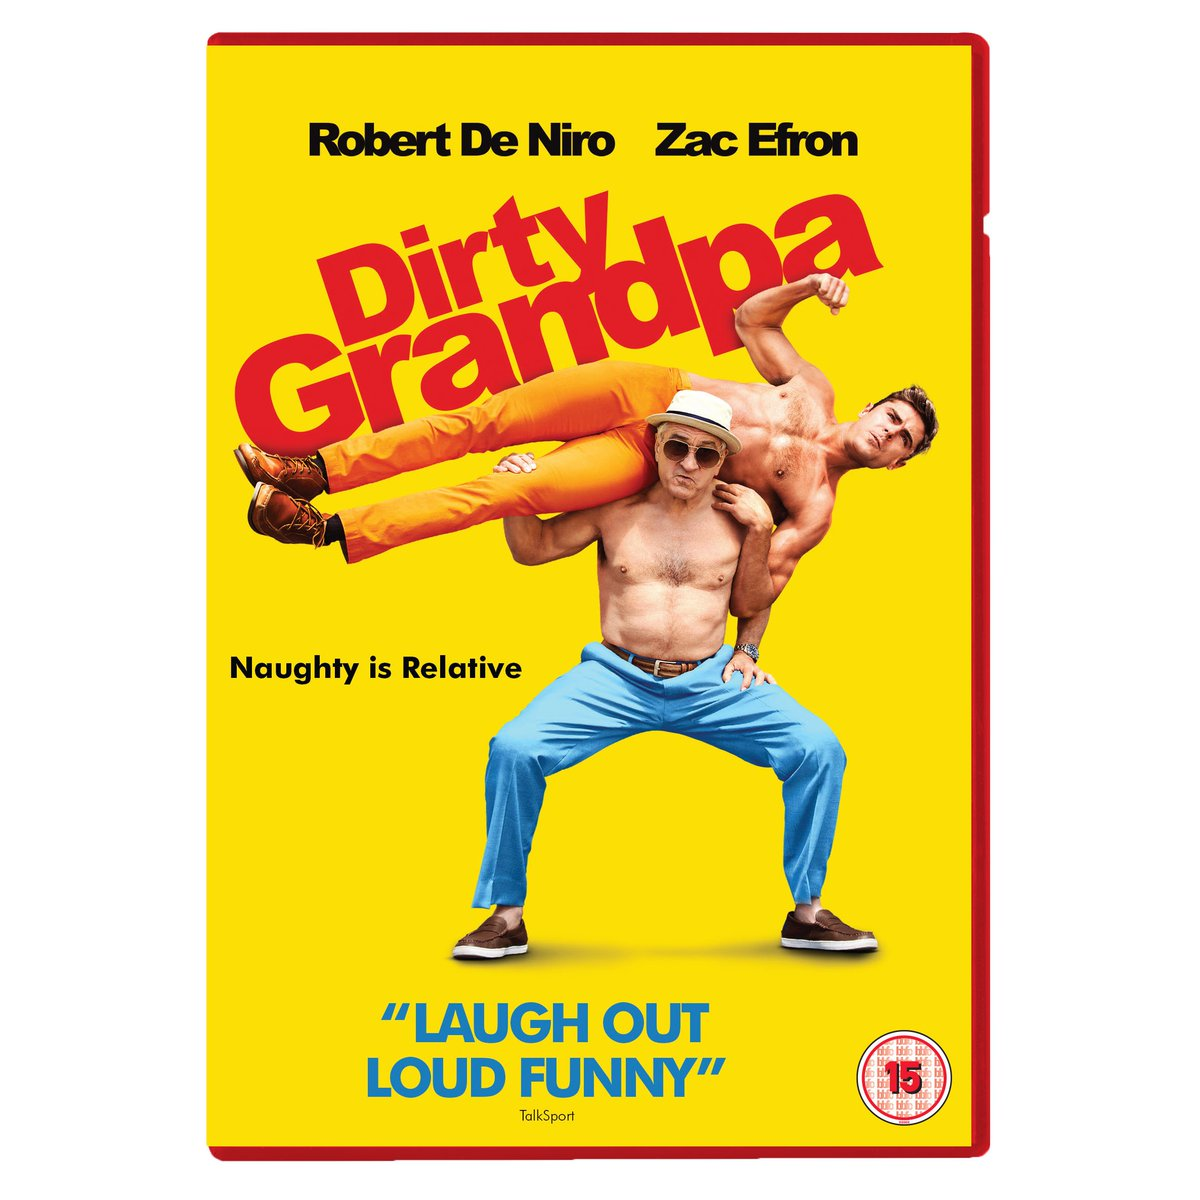 Win! Follow @CultBoxTV and RT for a chance to win one of four 'Dirty Grandpa' DVDs https://t.co/wq6KWJD49w https://t.co/XHCbVbFMPC